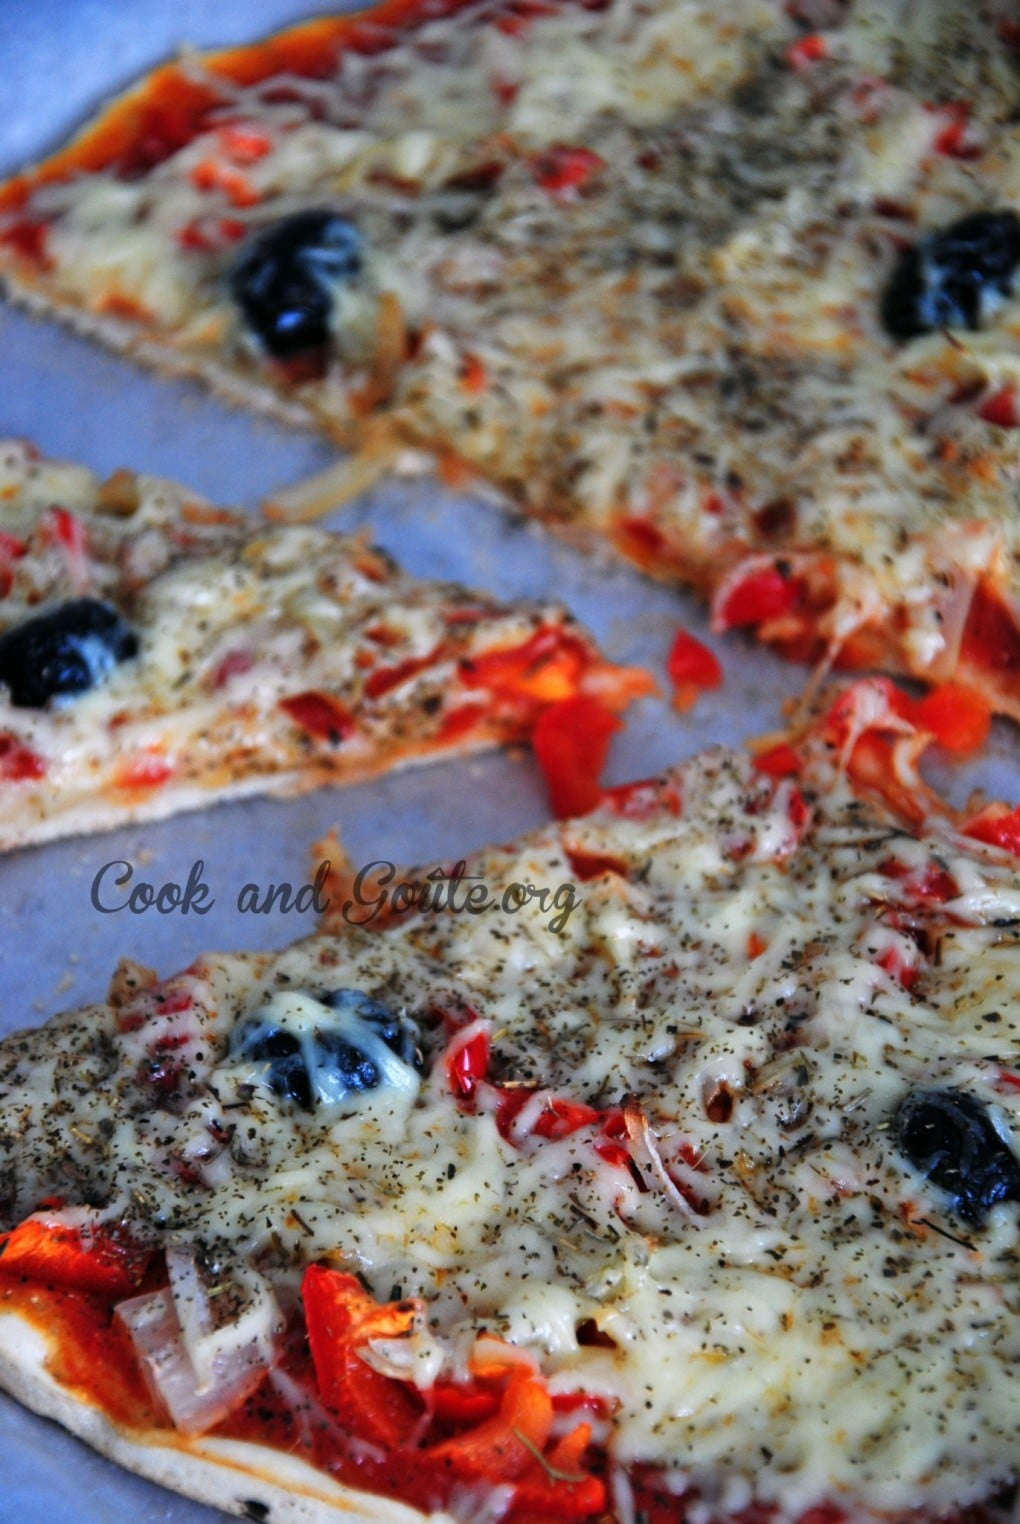 Pizza maison oignons poivrons rouge cook and go te - Ingredient pizza maison ...